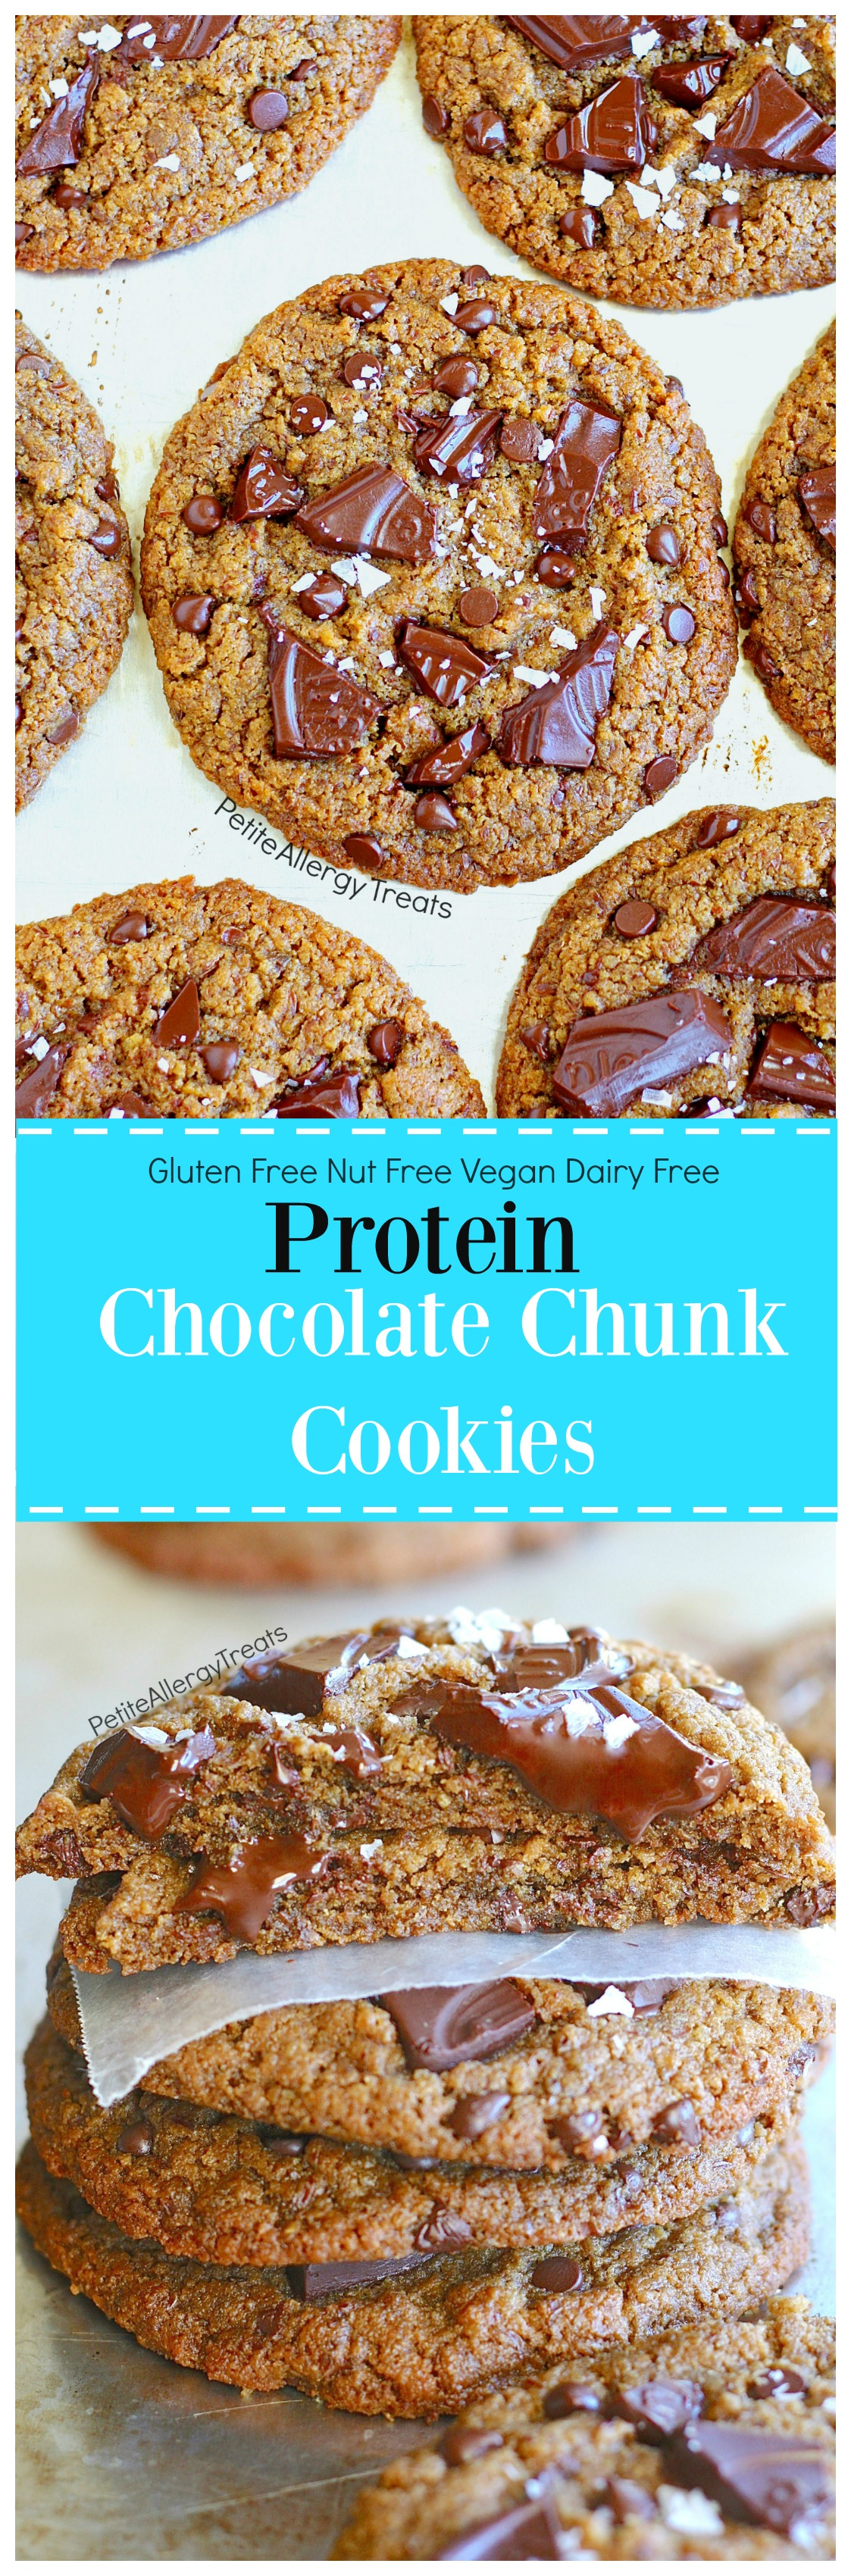 Gluten Free Chocolate Chunk Protein Cookies (nut free vegan dairy free) Recipe- Crisp bakery style food allergy friendly peanut butter-free chocolate chip cookies.